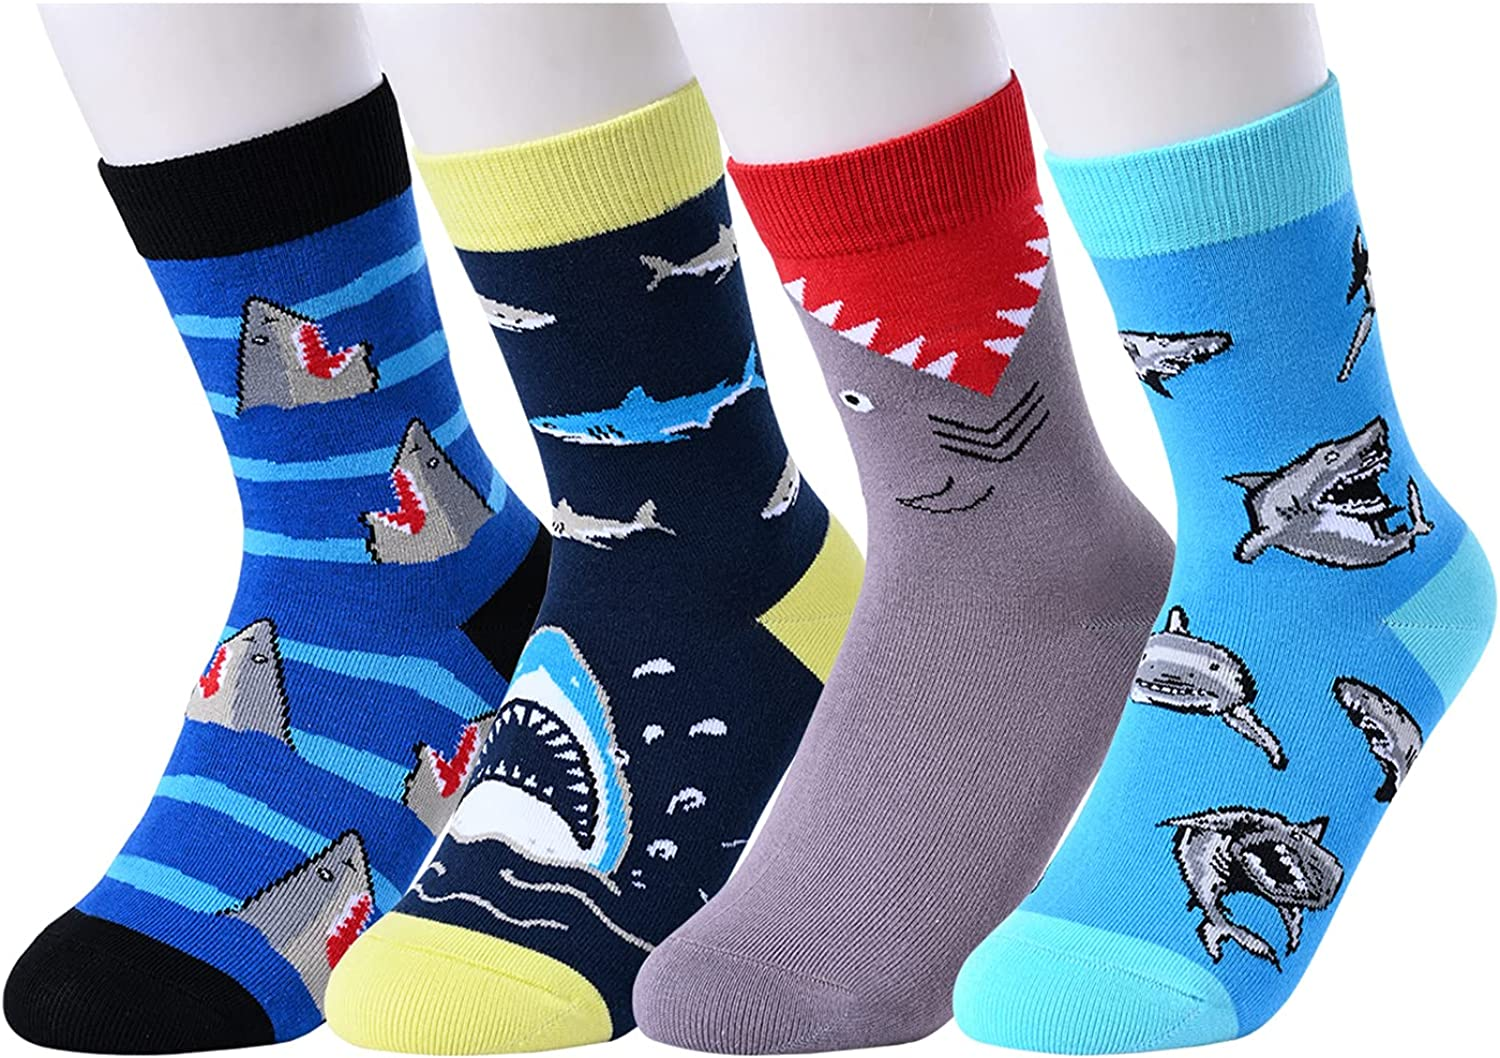 HAPPYPOP Gifts Fort Worth Mall for Teenage favorite Boys Years 4-10 Funny Socks Kids